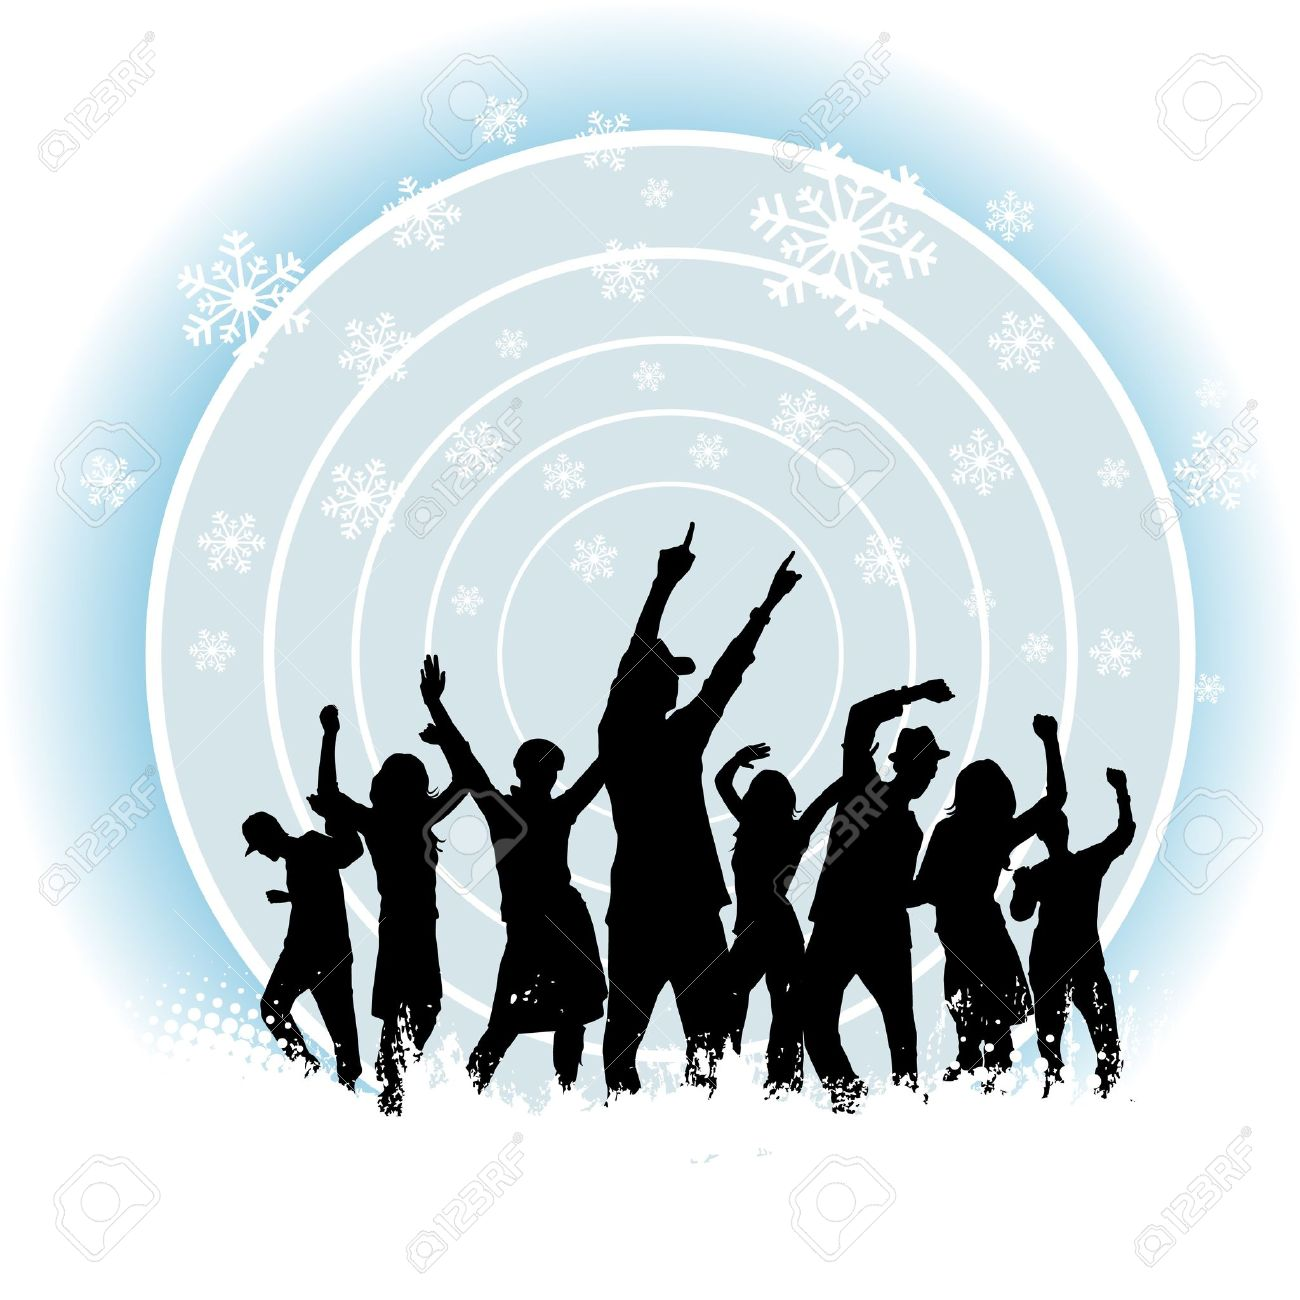 Party People And Winter Background Stock Vector